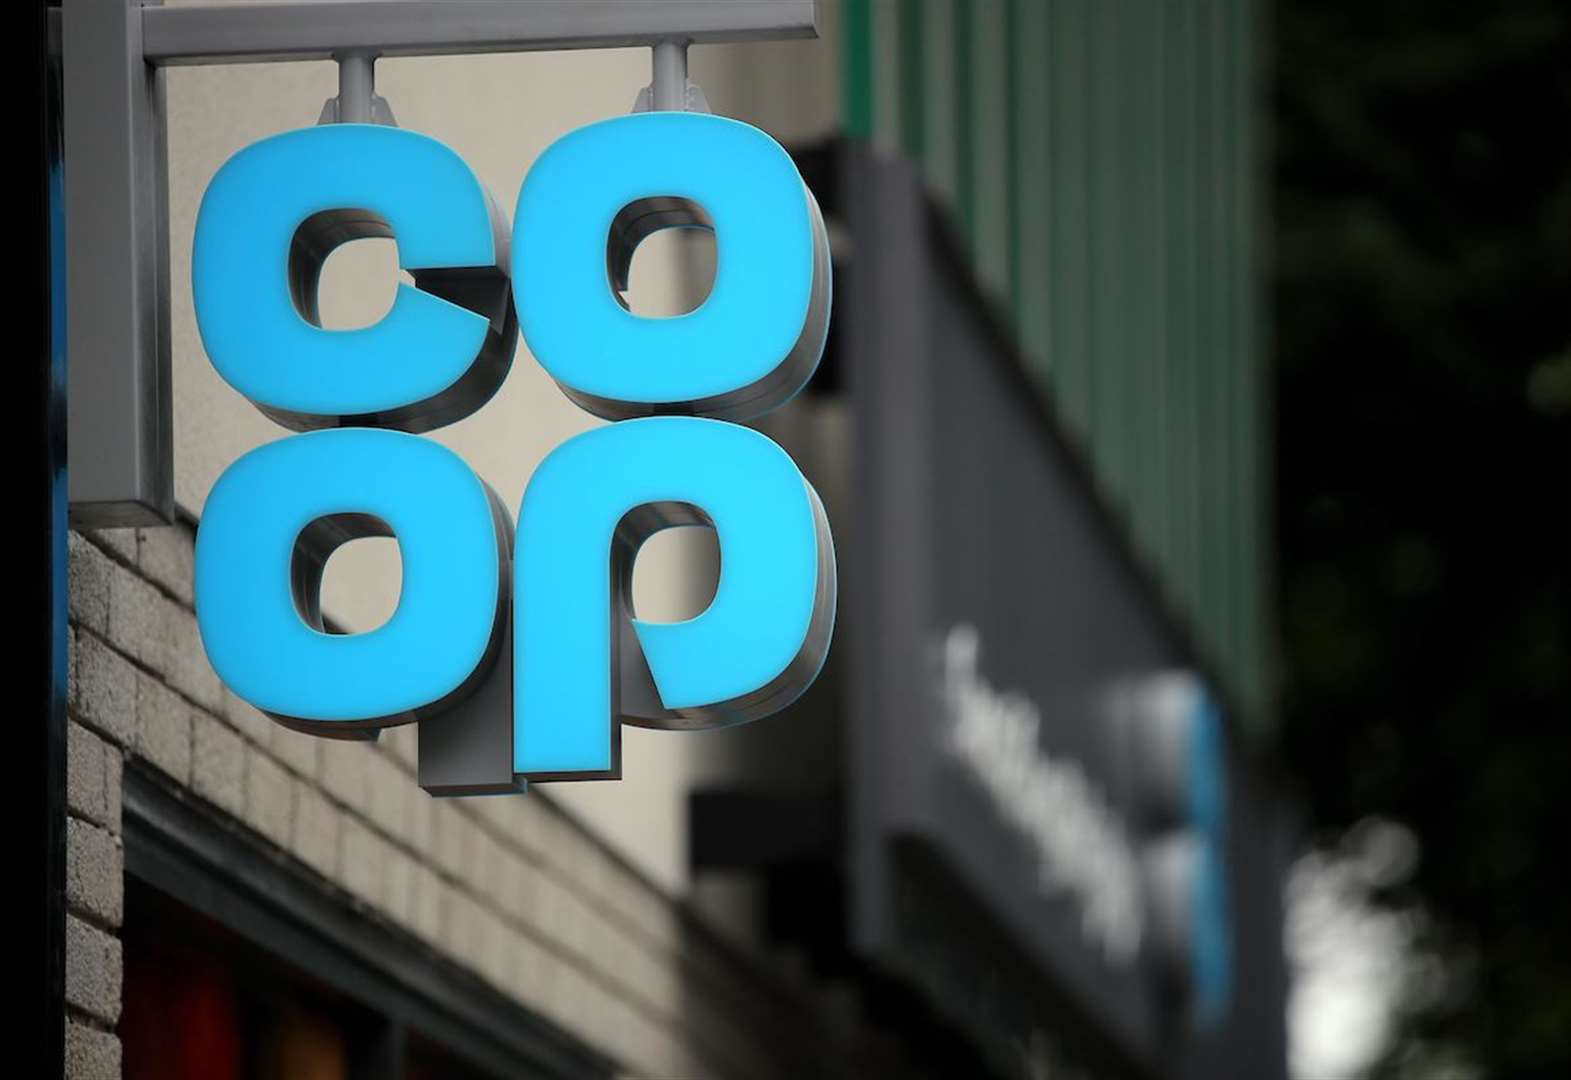 Co-op respond after store is attacked